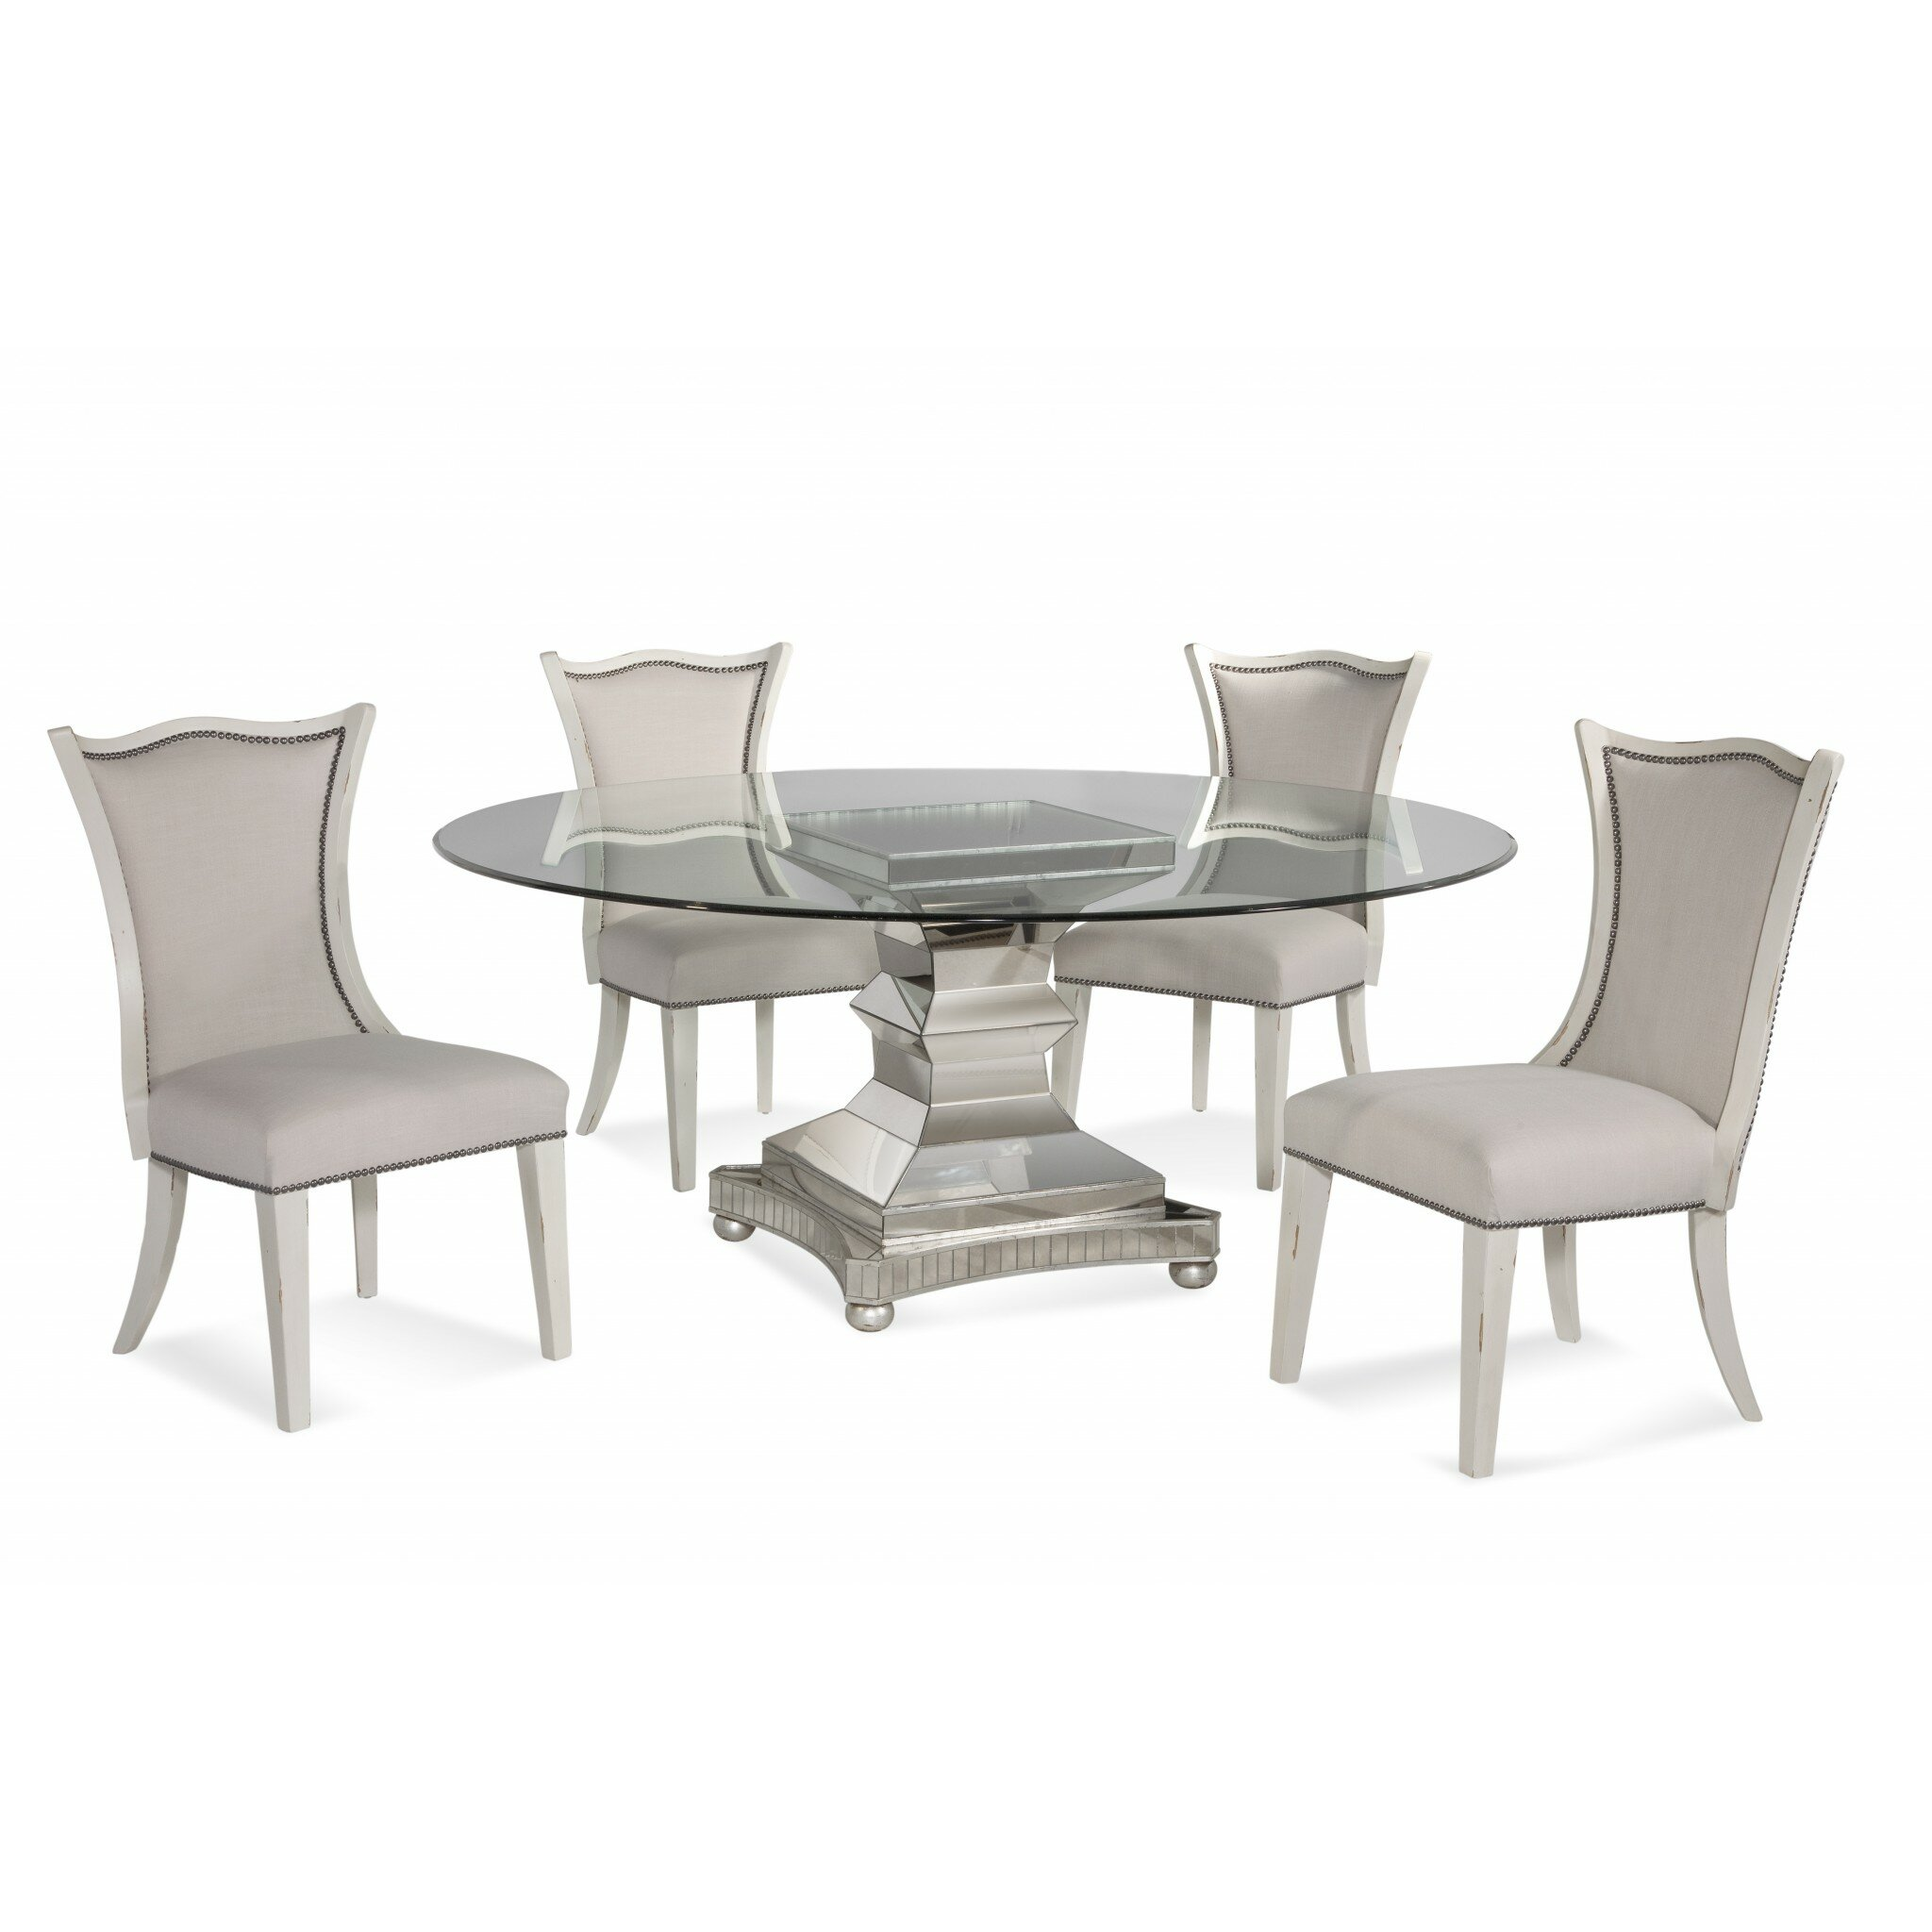 House of hampton crowthorne 5 piece dining set wayfair for 5 piece dining set